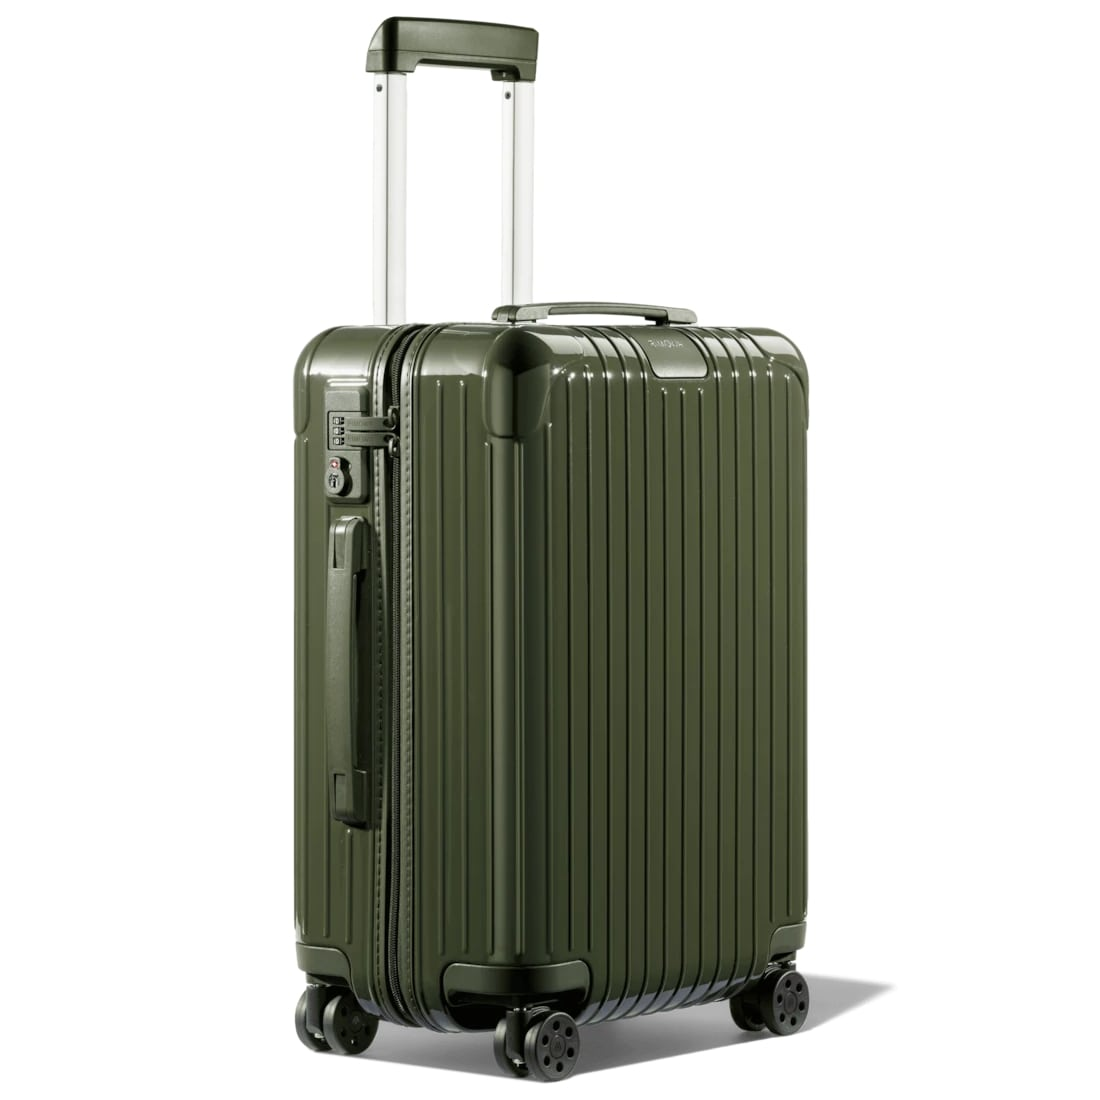 Rimowa Essential Cabin rolling suitcase in green, best rolling suitcases